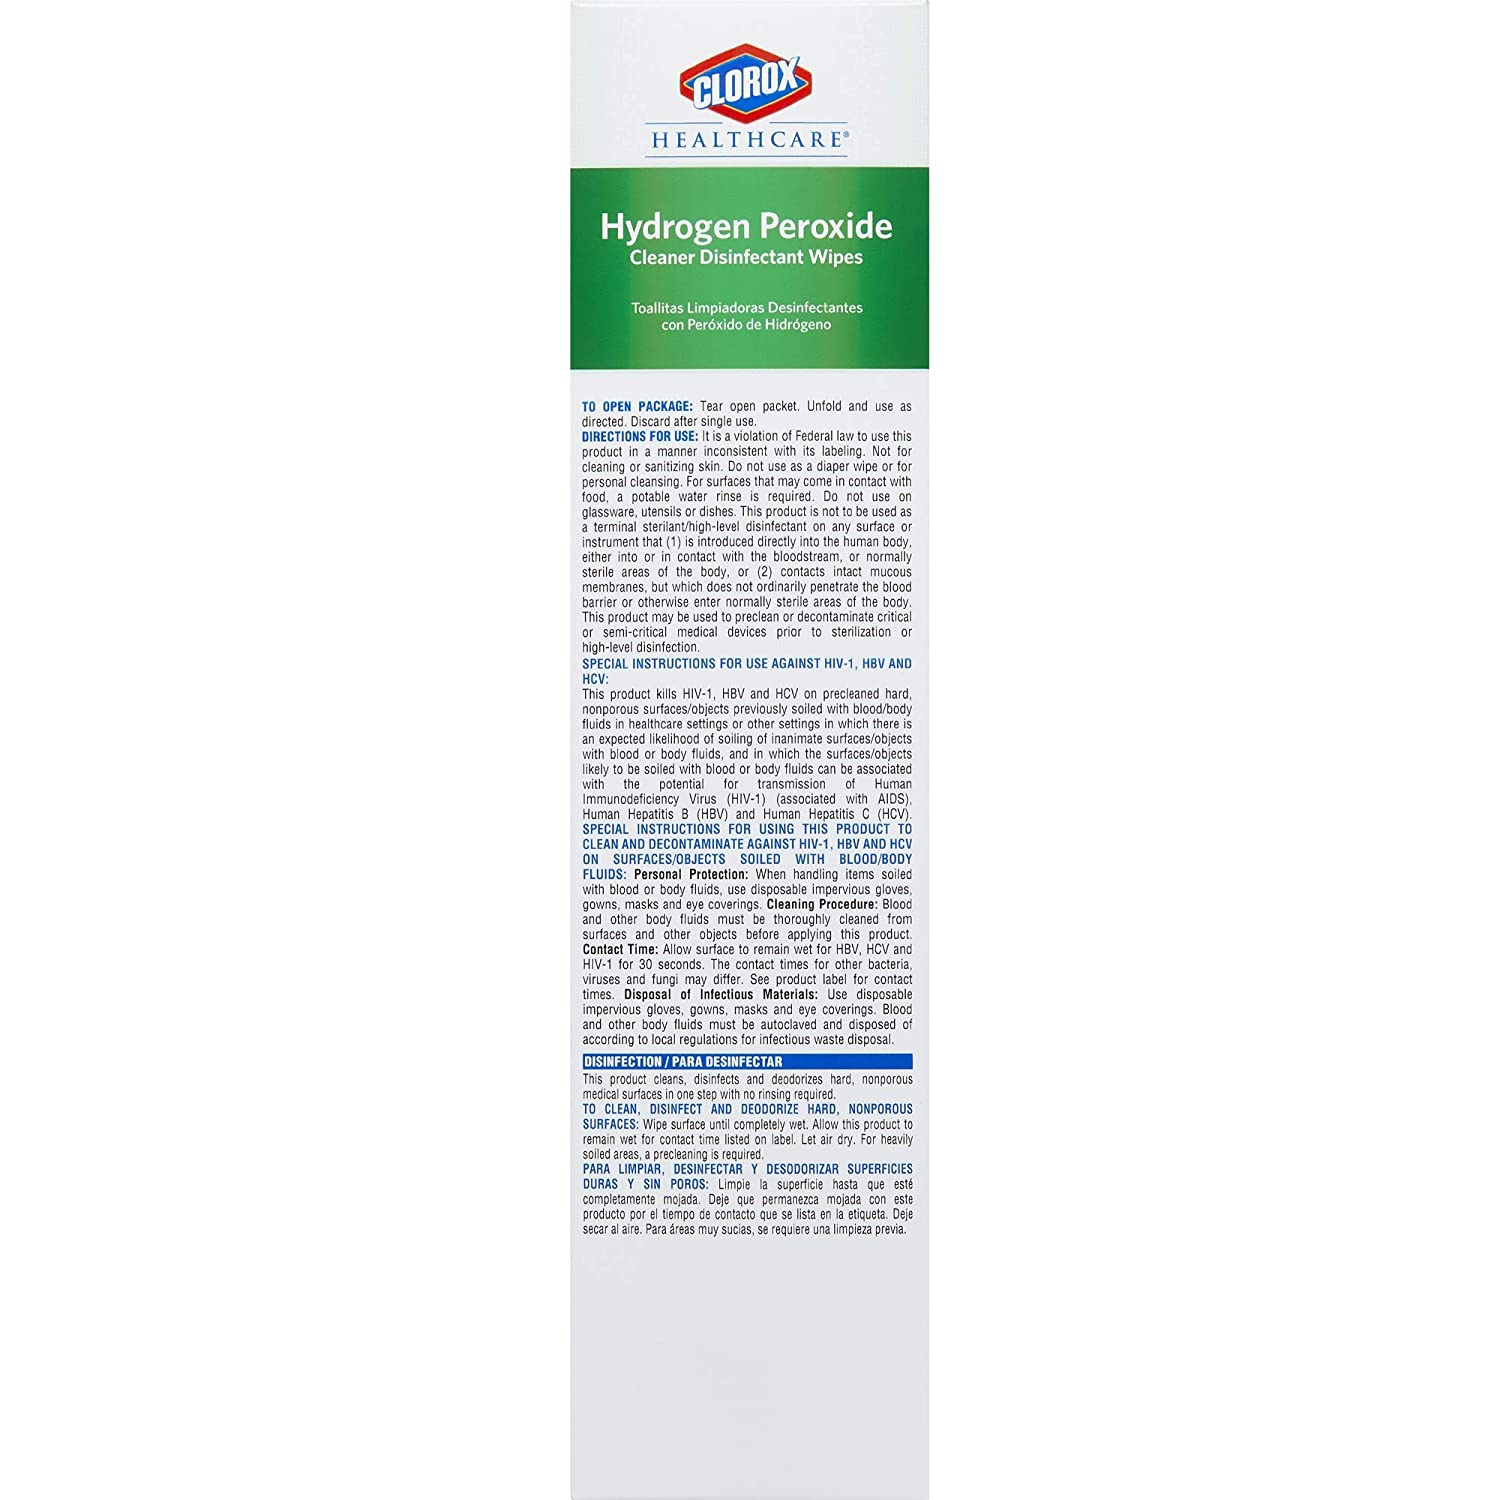 Amazon.com: Clorox Healthcare Hydrogen Peroxide Cleaner Disinfectant Wipes, individual 50 Wipes (31426): Industrial & Scientific